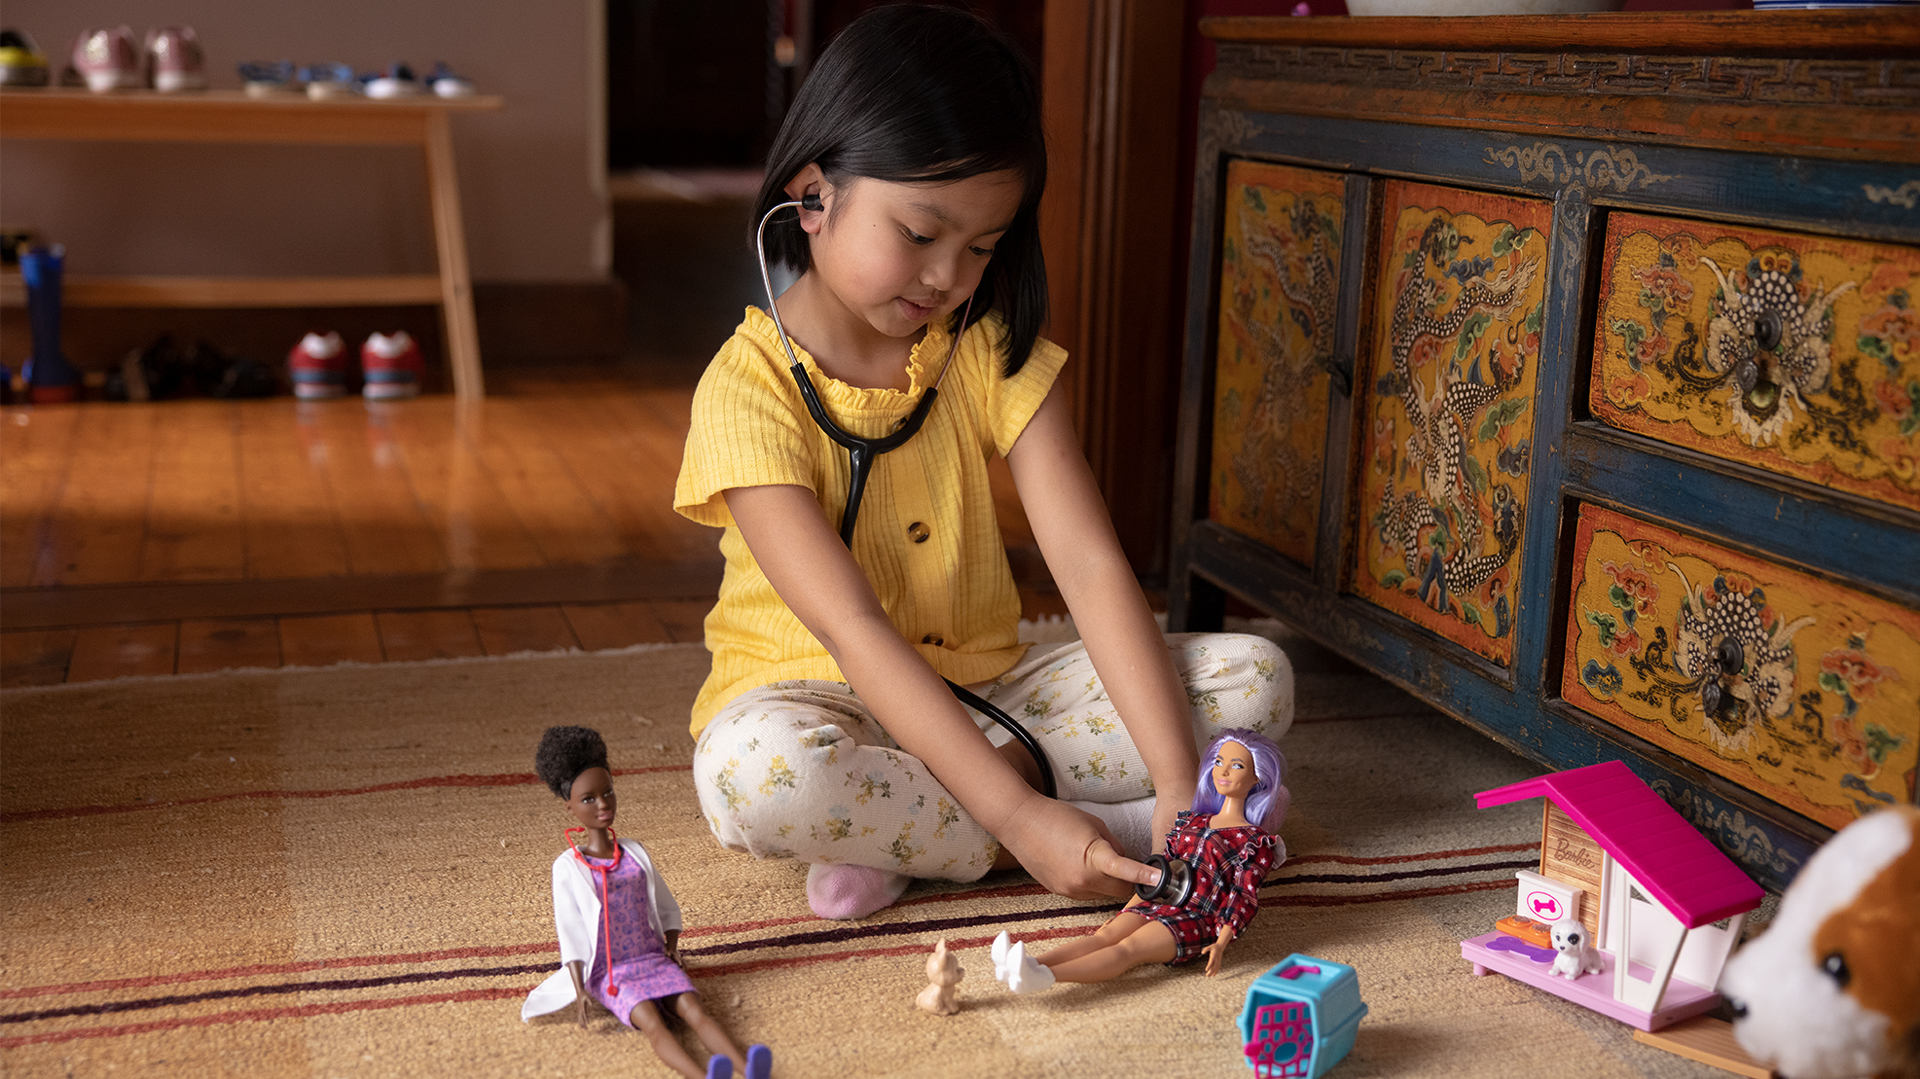 Photo of a girl playing with Barbie dolls